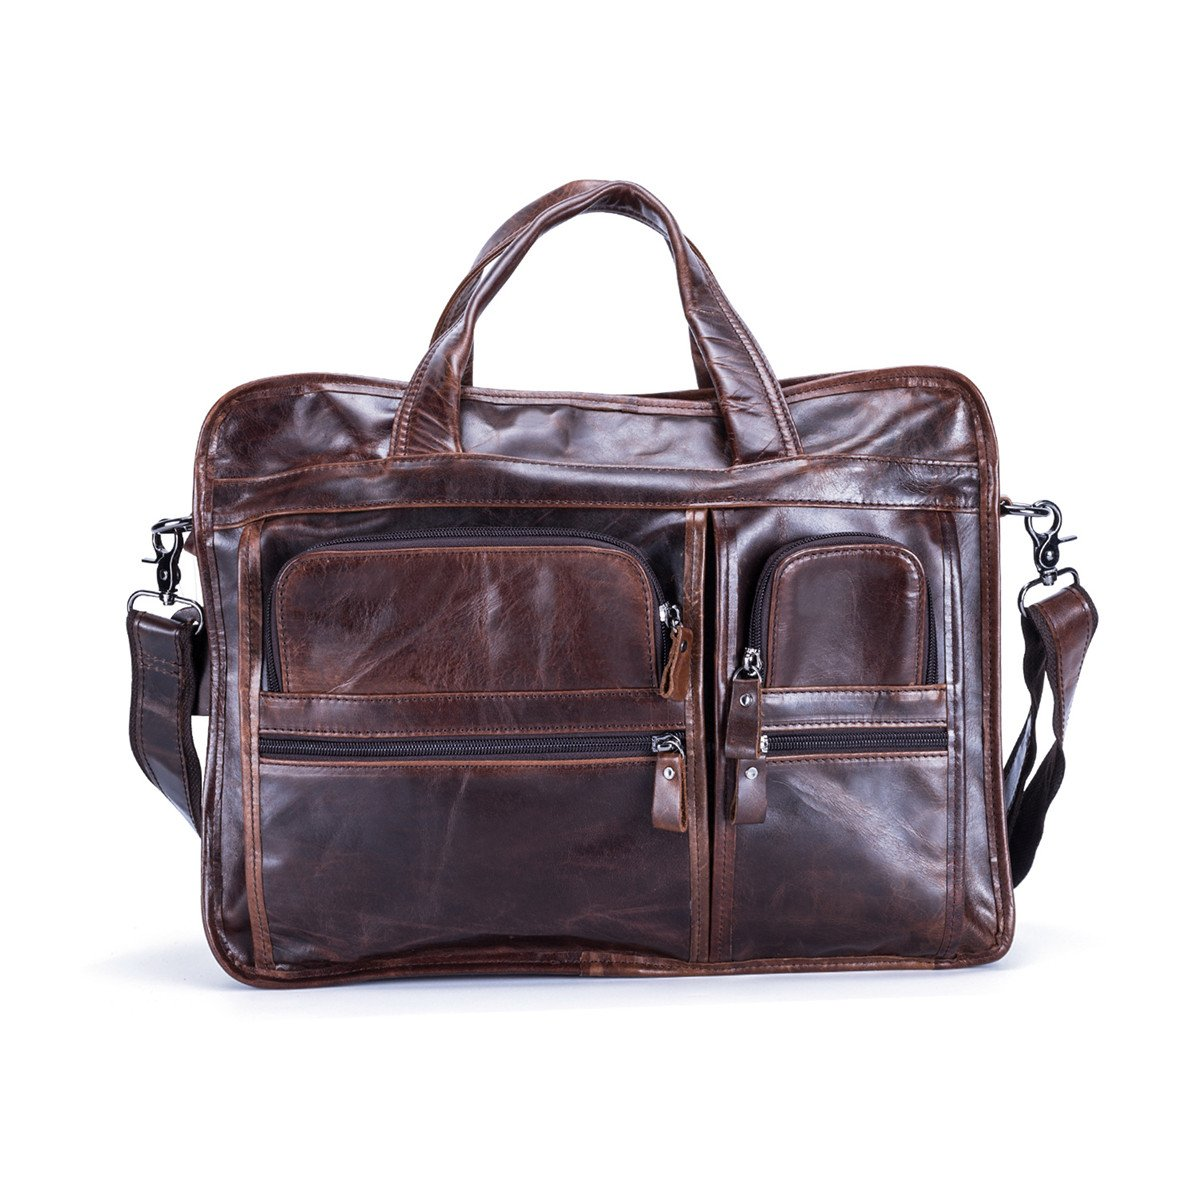 leather bags for men Retro Leather Briefcase Laptop Messenger Bag Marwar